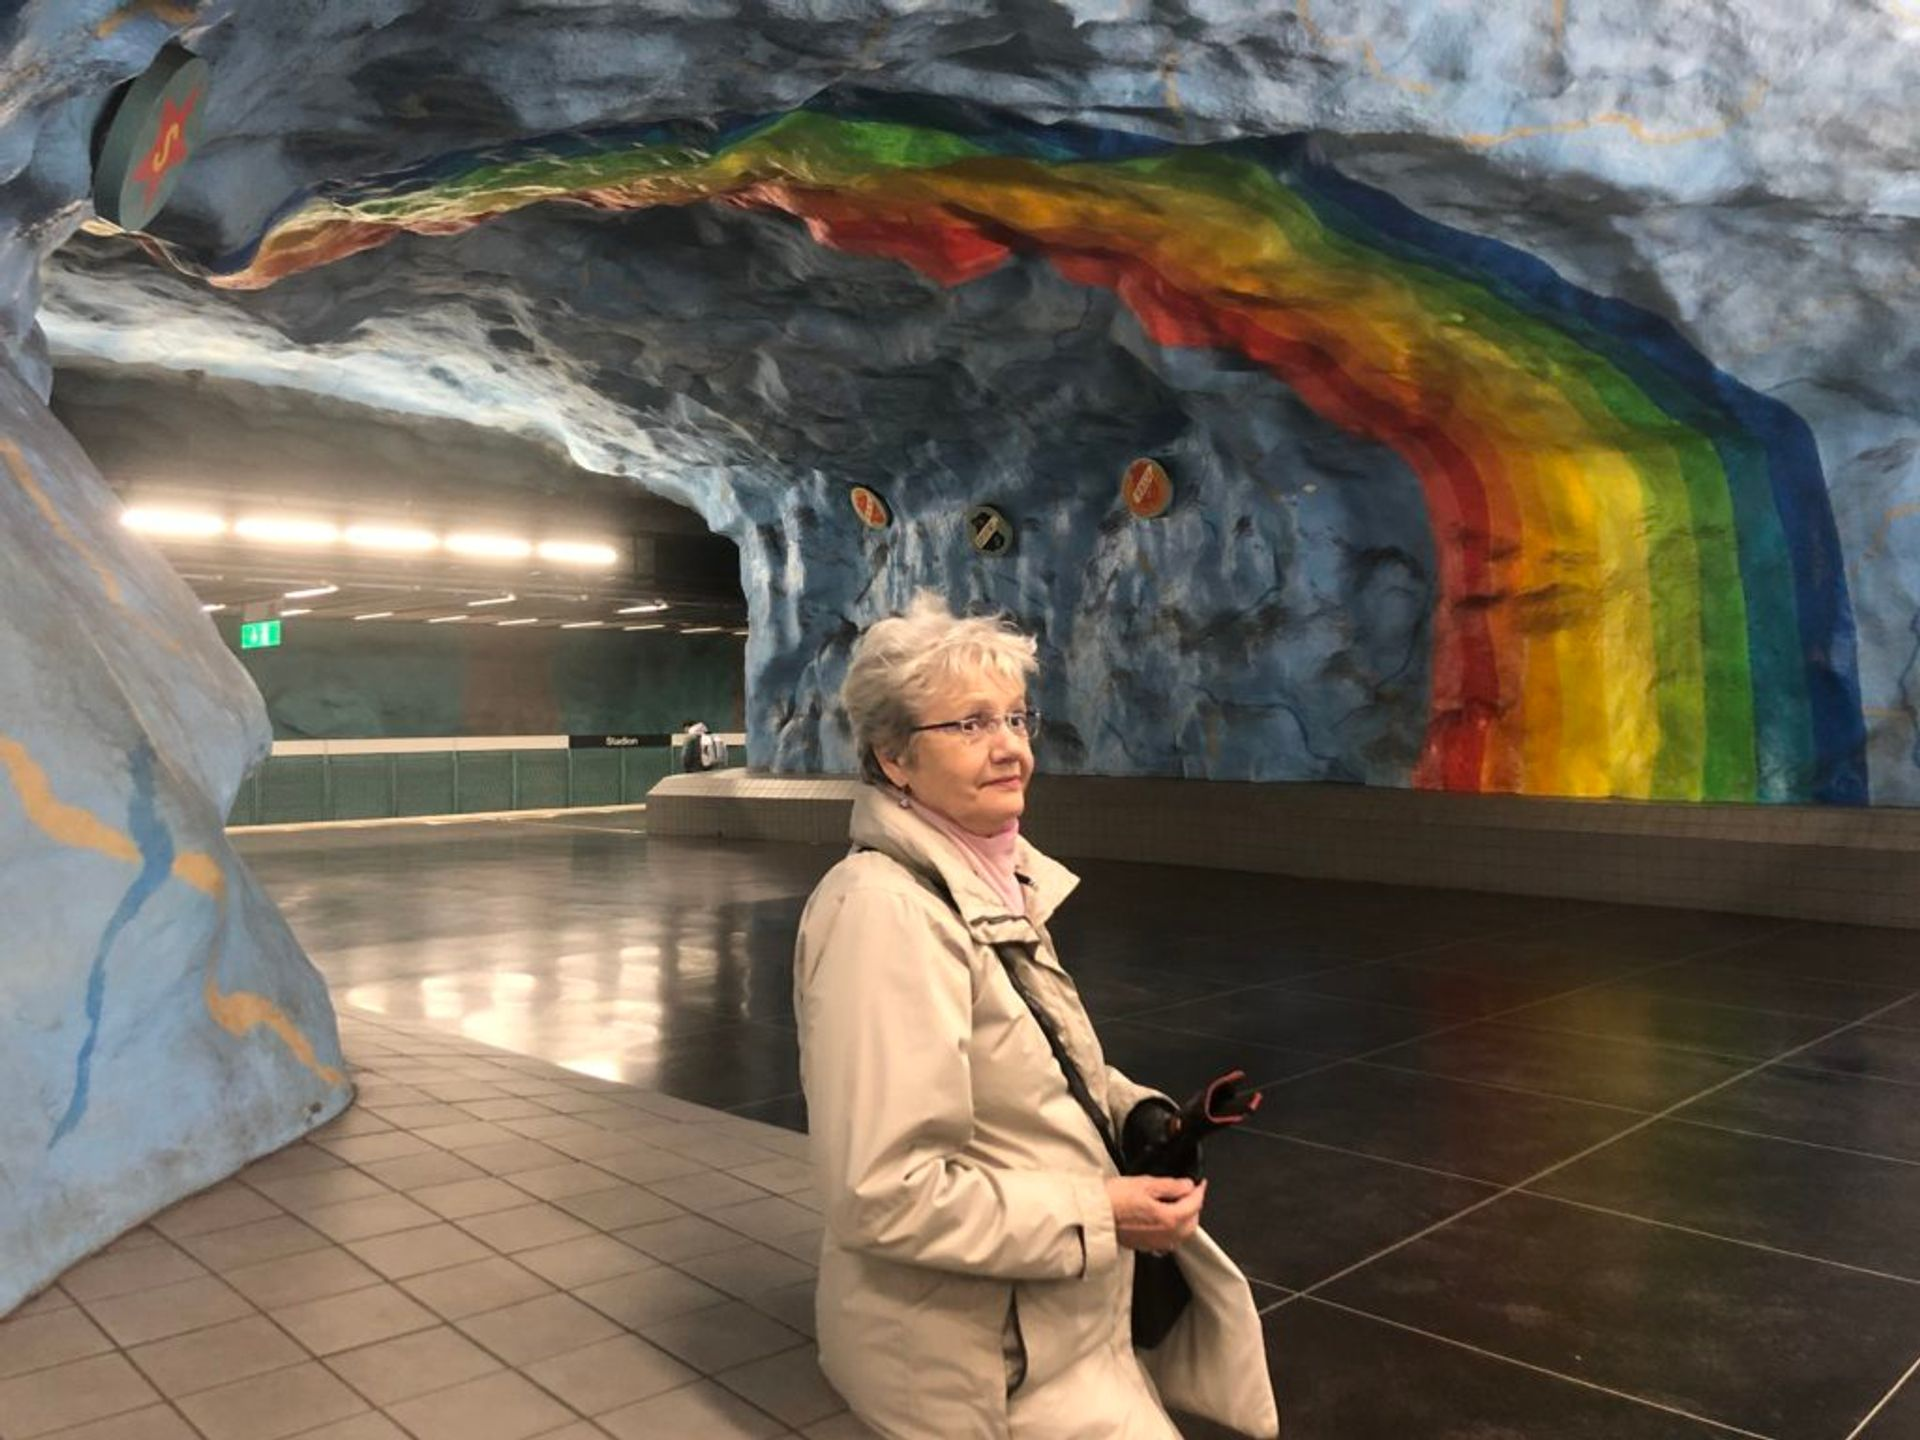 Tiiu, our guide in a Stockholm metro station.